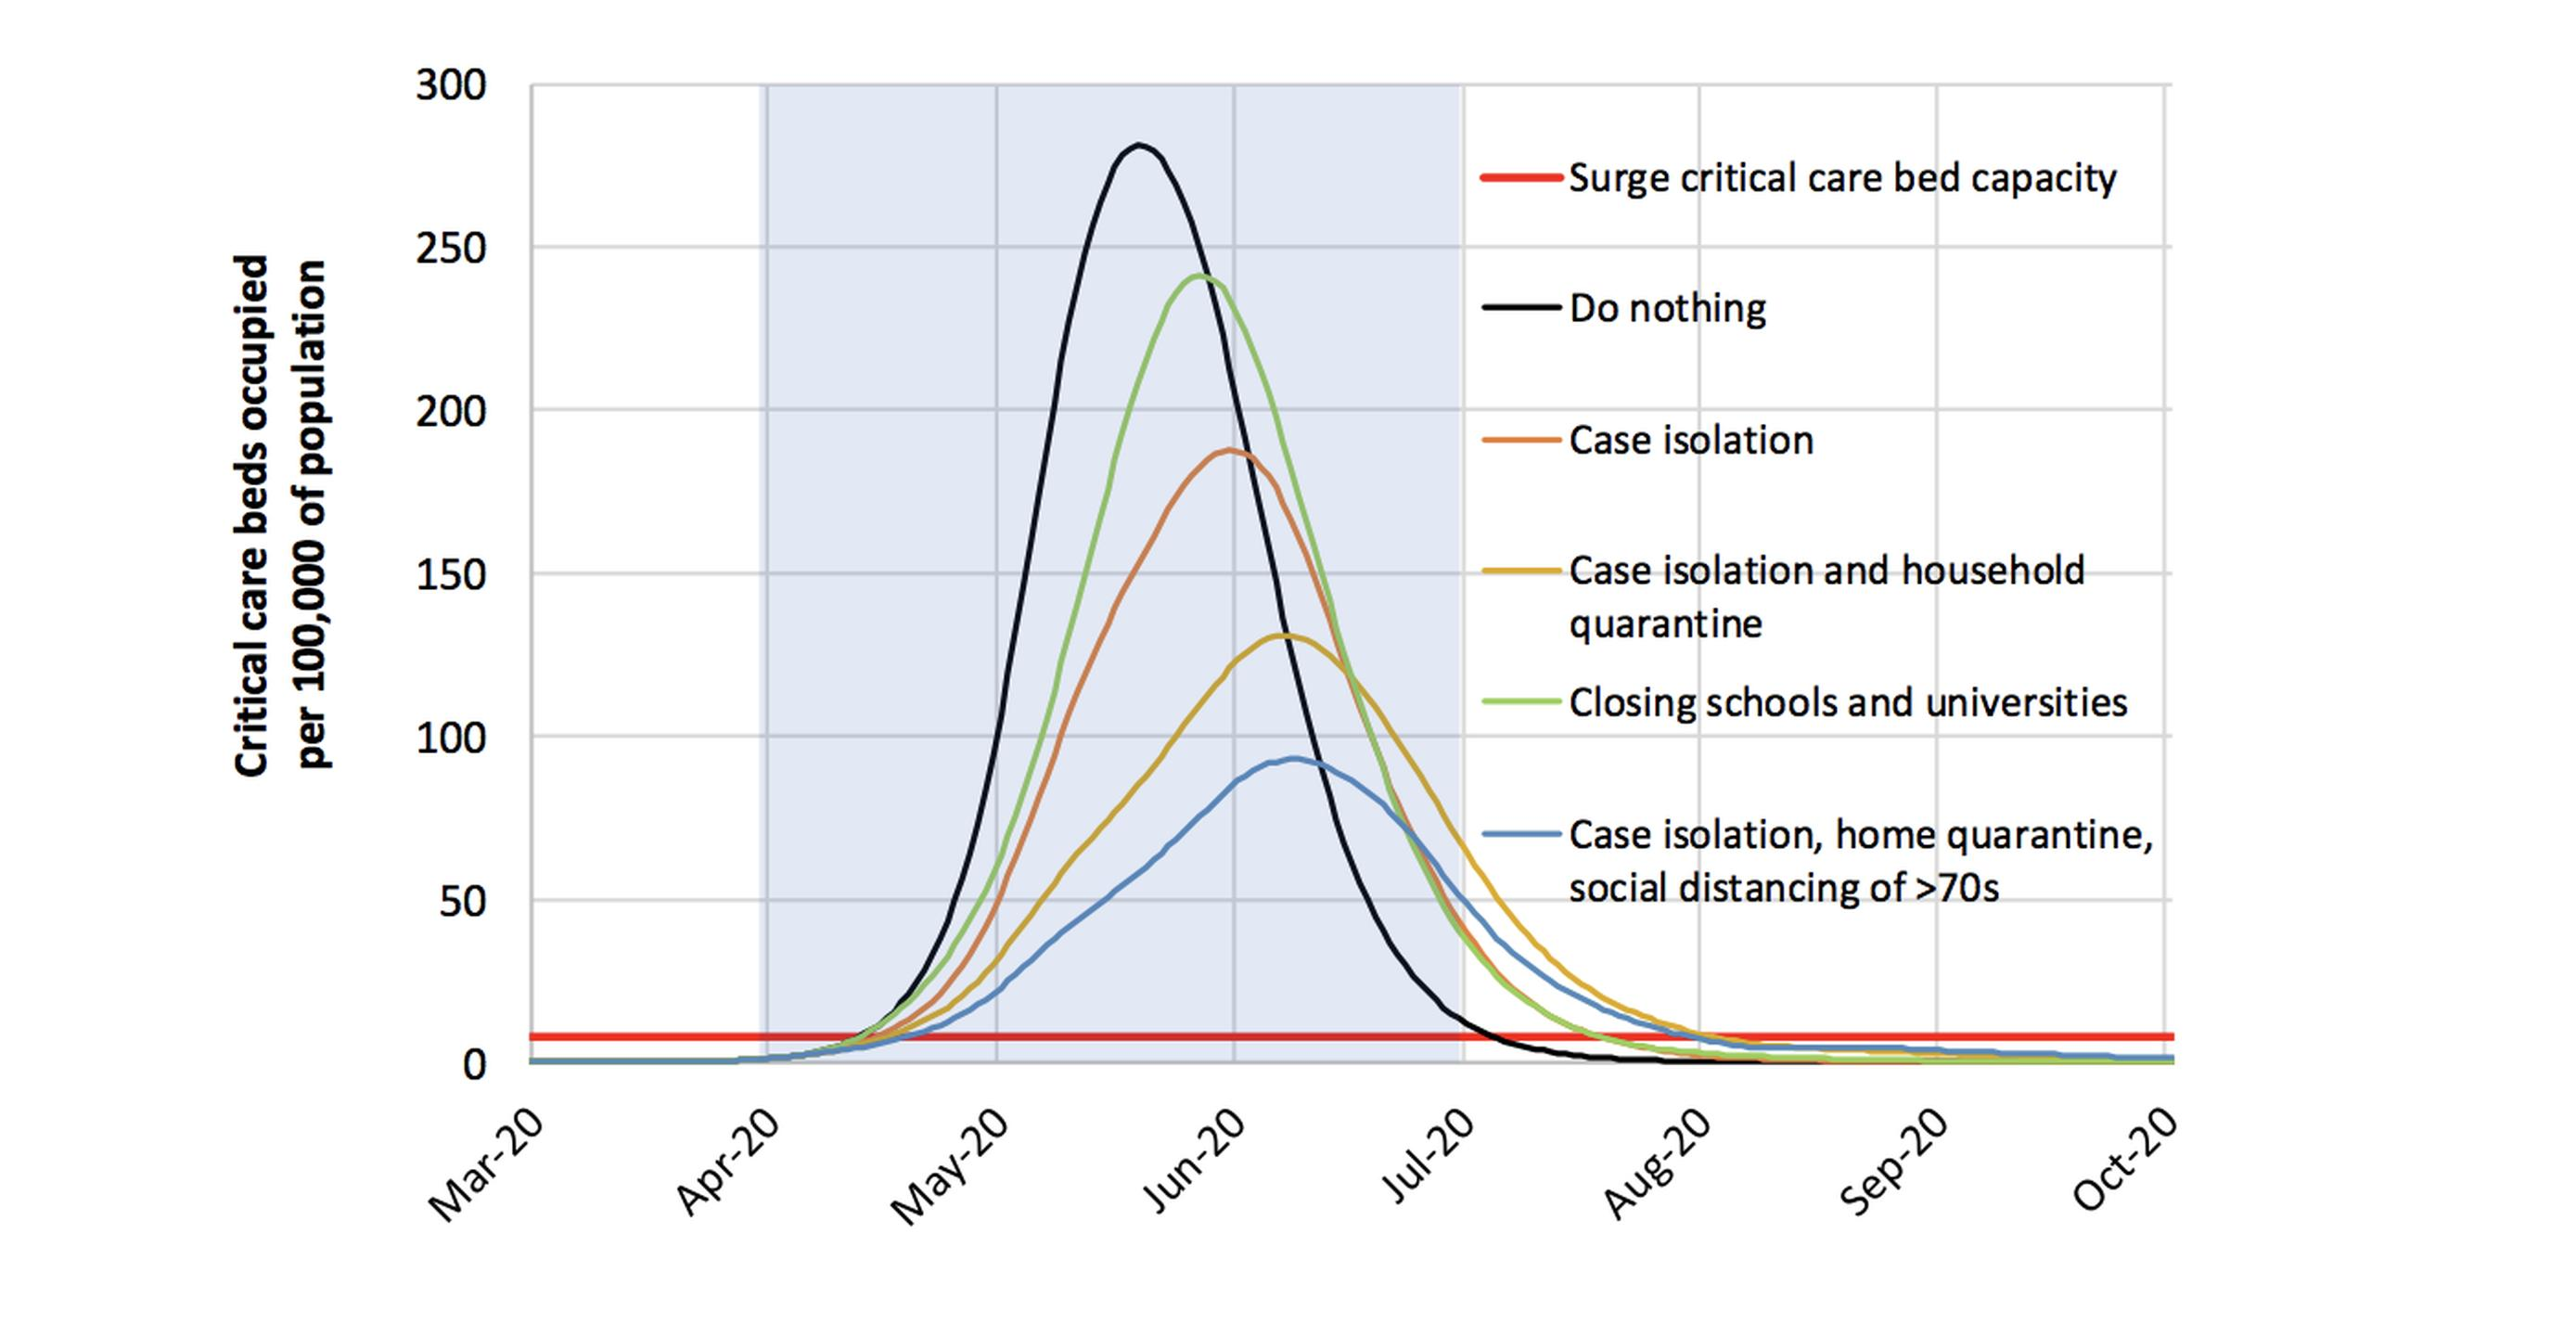 Mitigation strategy scenarios for GB showing critical care (ICU) bed requirements. The black line shows the unmitigated epidemic. The green line shows a mitigation strategy incorporating closure of schools and universities; orange line shows case isolation; yellow line shows case isolation and household quarantine; and the blue line shows case isolation, home quarantine and social distancing of those aged over 70. The blue shading shows the 3-month period in which these interventions are assumed to remain in place